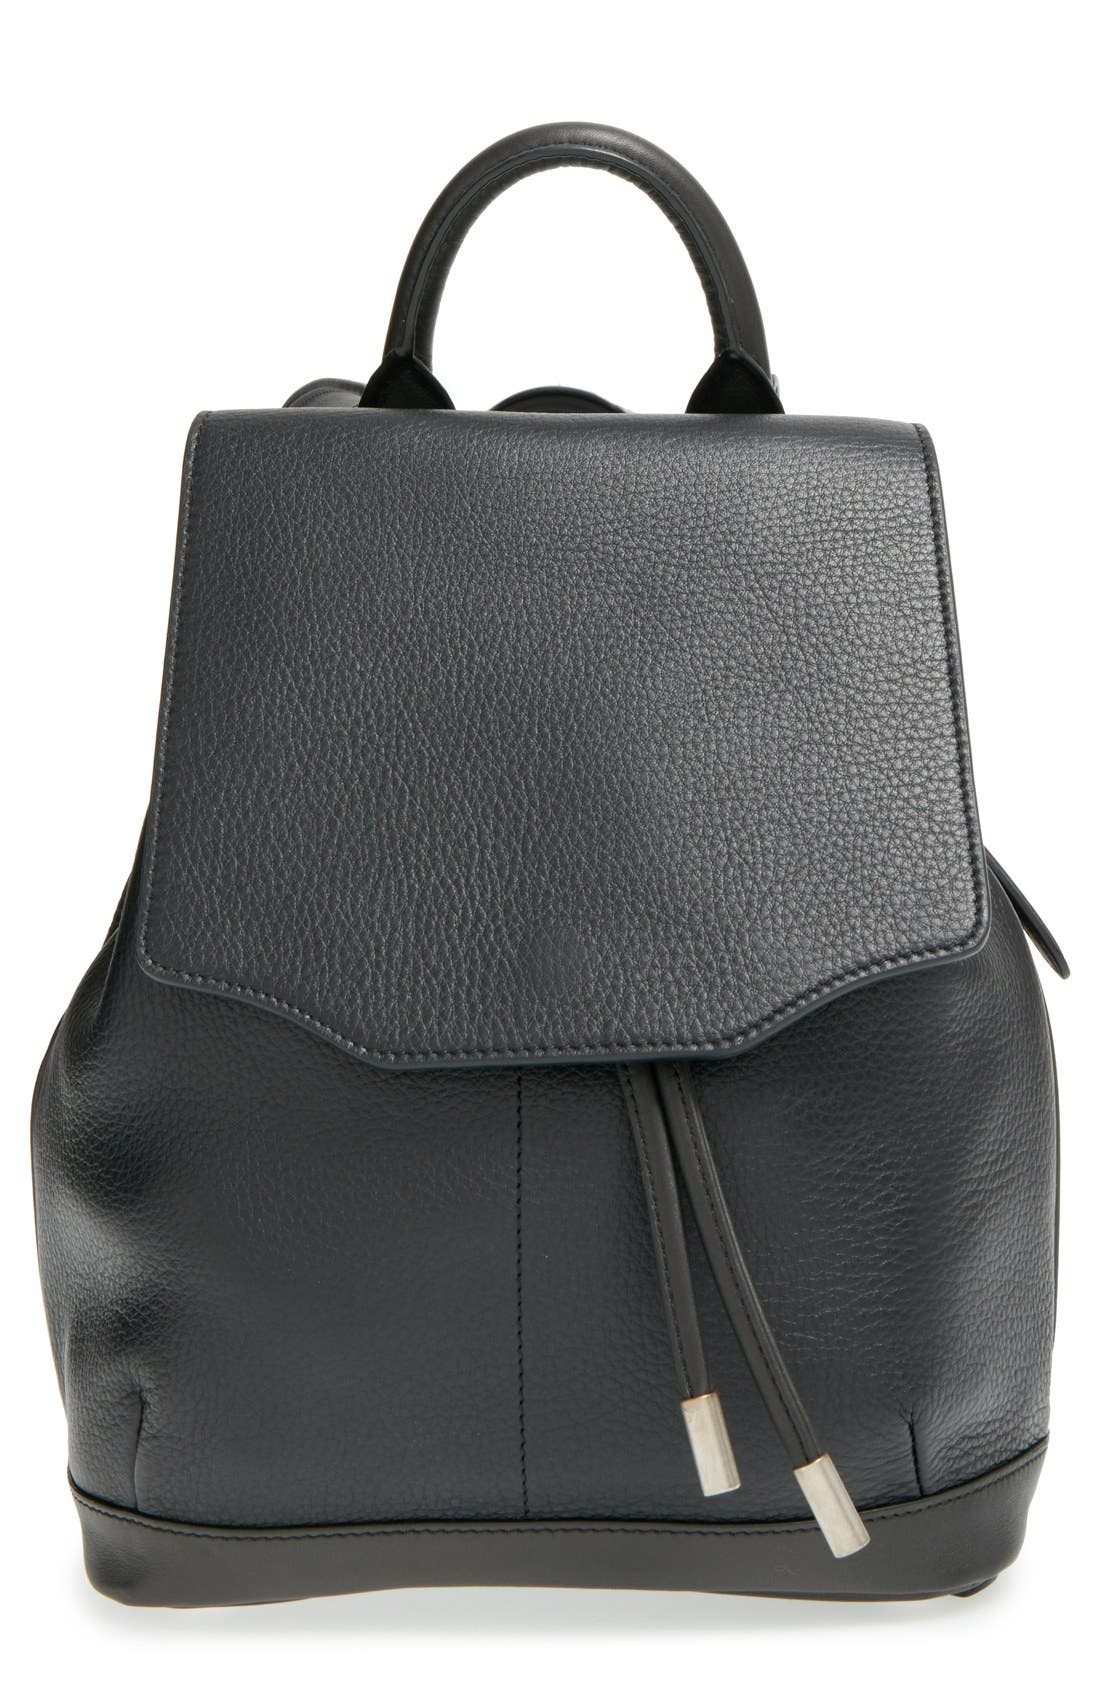 Alternate Image 1 Selected - rag & bone 'Mini Pilot' Quilted Leather Backpack